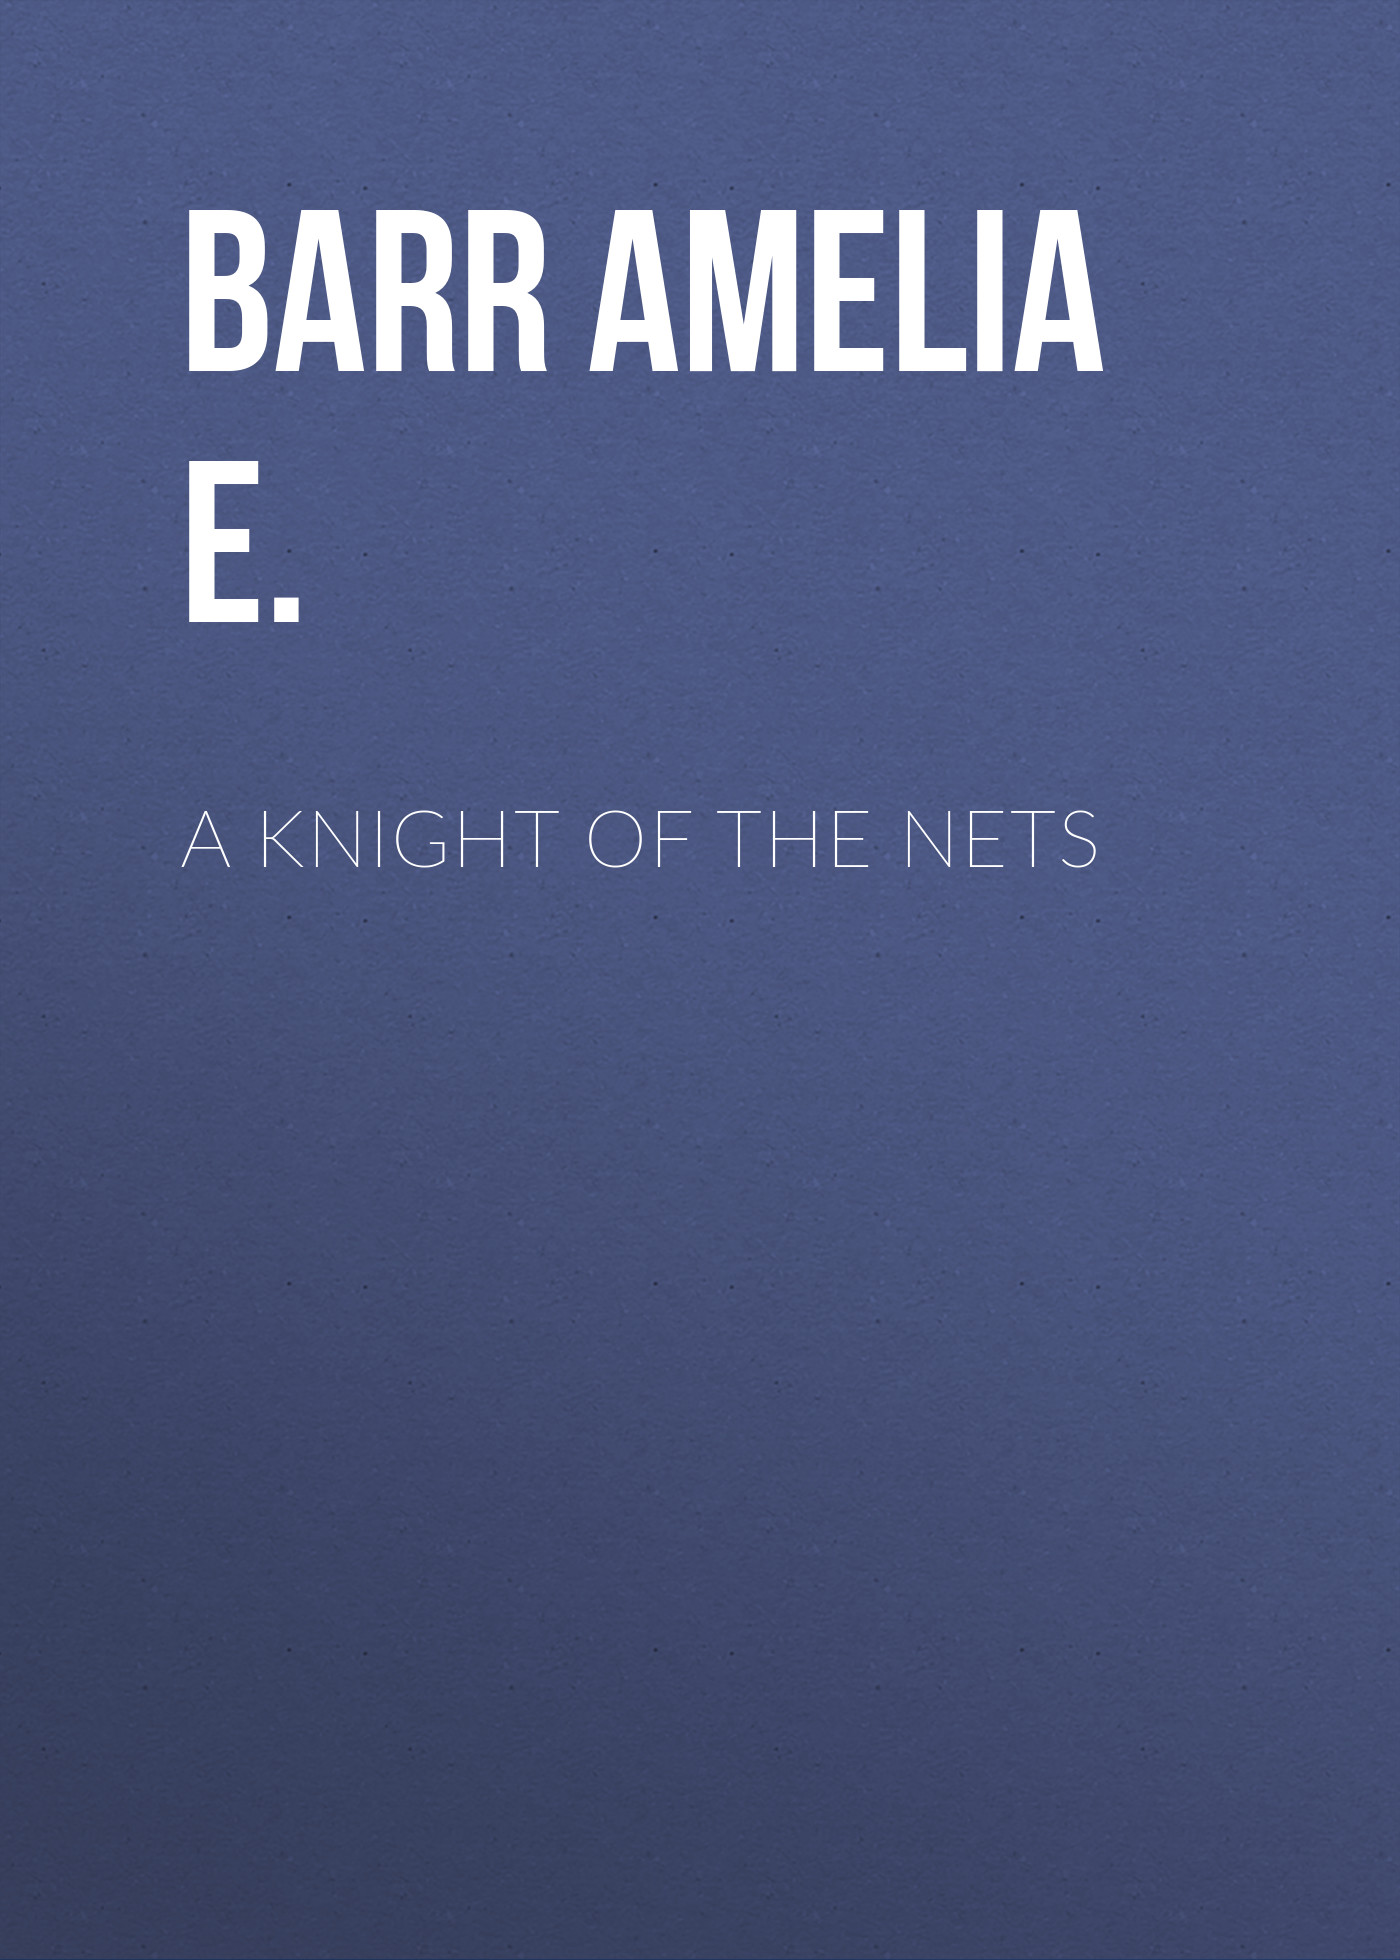 Barr Amelia E. A Knight of the Nets